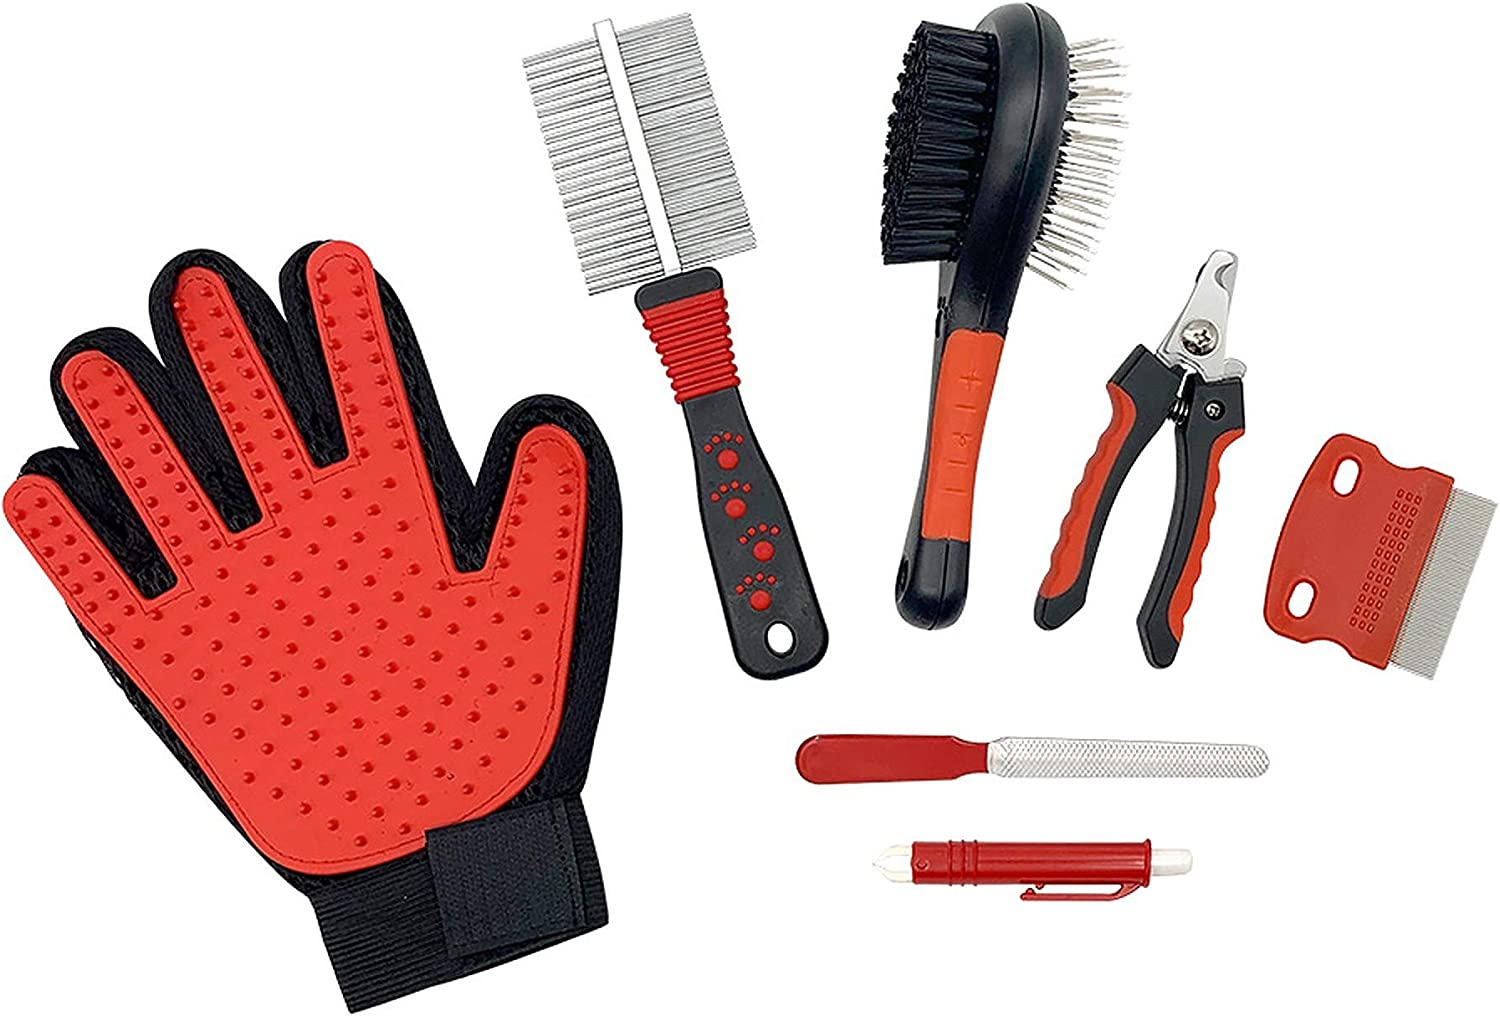 AkeedLimited [7 in 1 Pet Grooming Kit] Dog and Cat Nail Clippers, Nail File, Hair Remover Glove, Comb, Double-Sided Brush. The Complete Pet Grooming Set, Professional at Home Care, Red